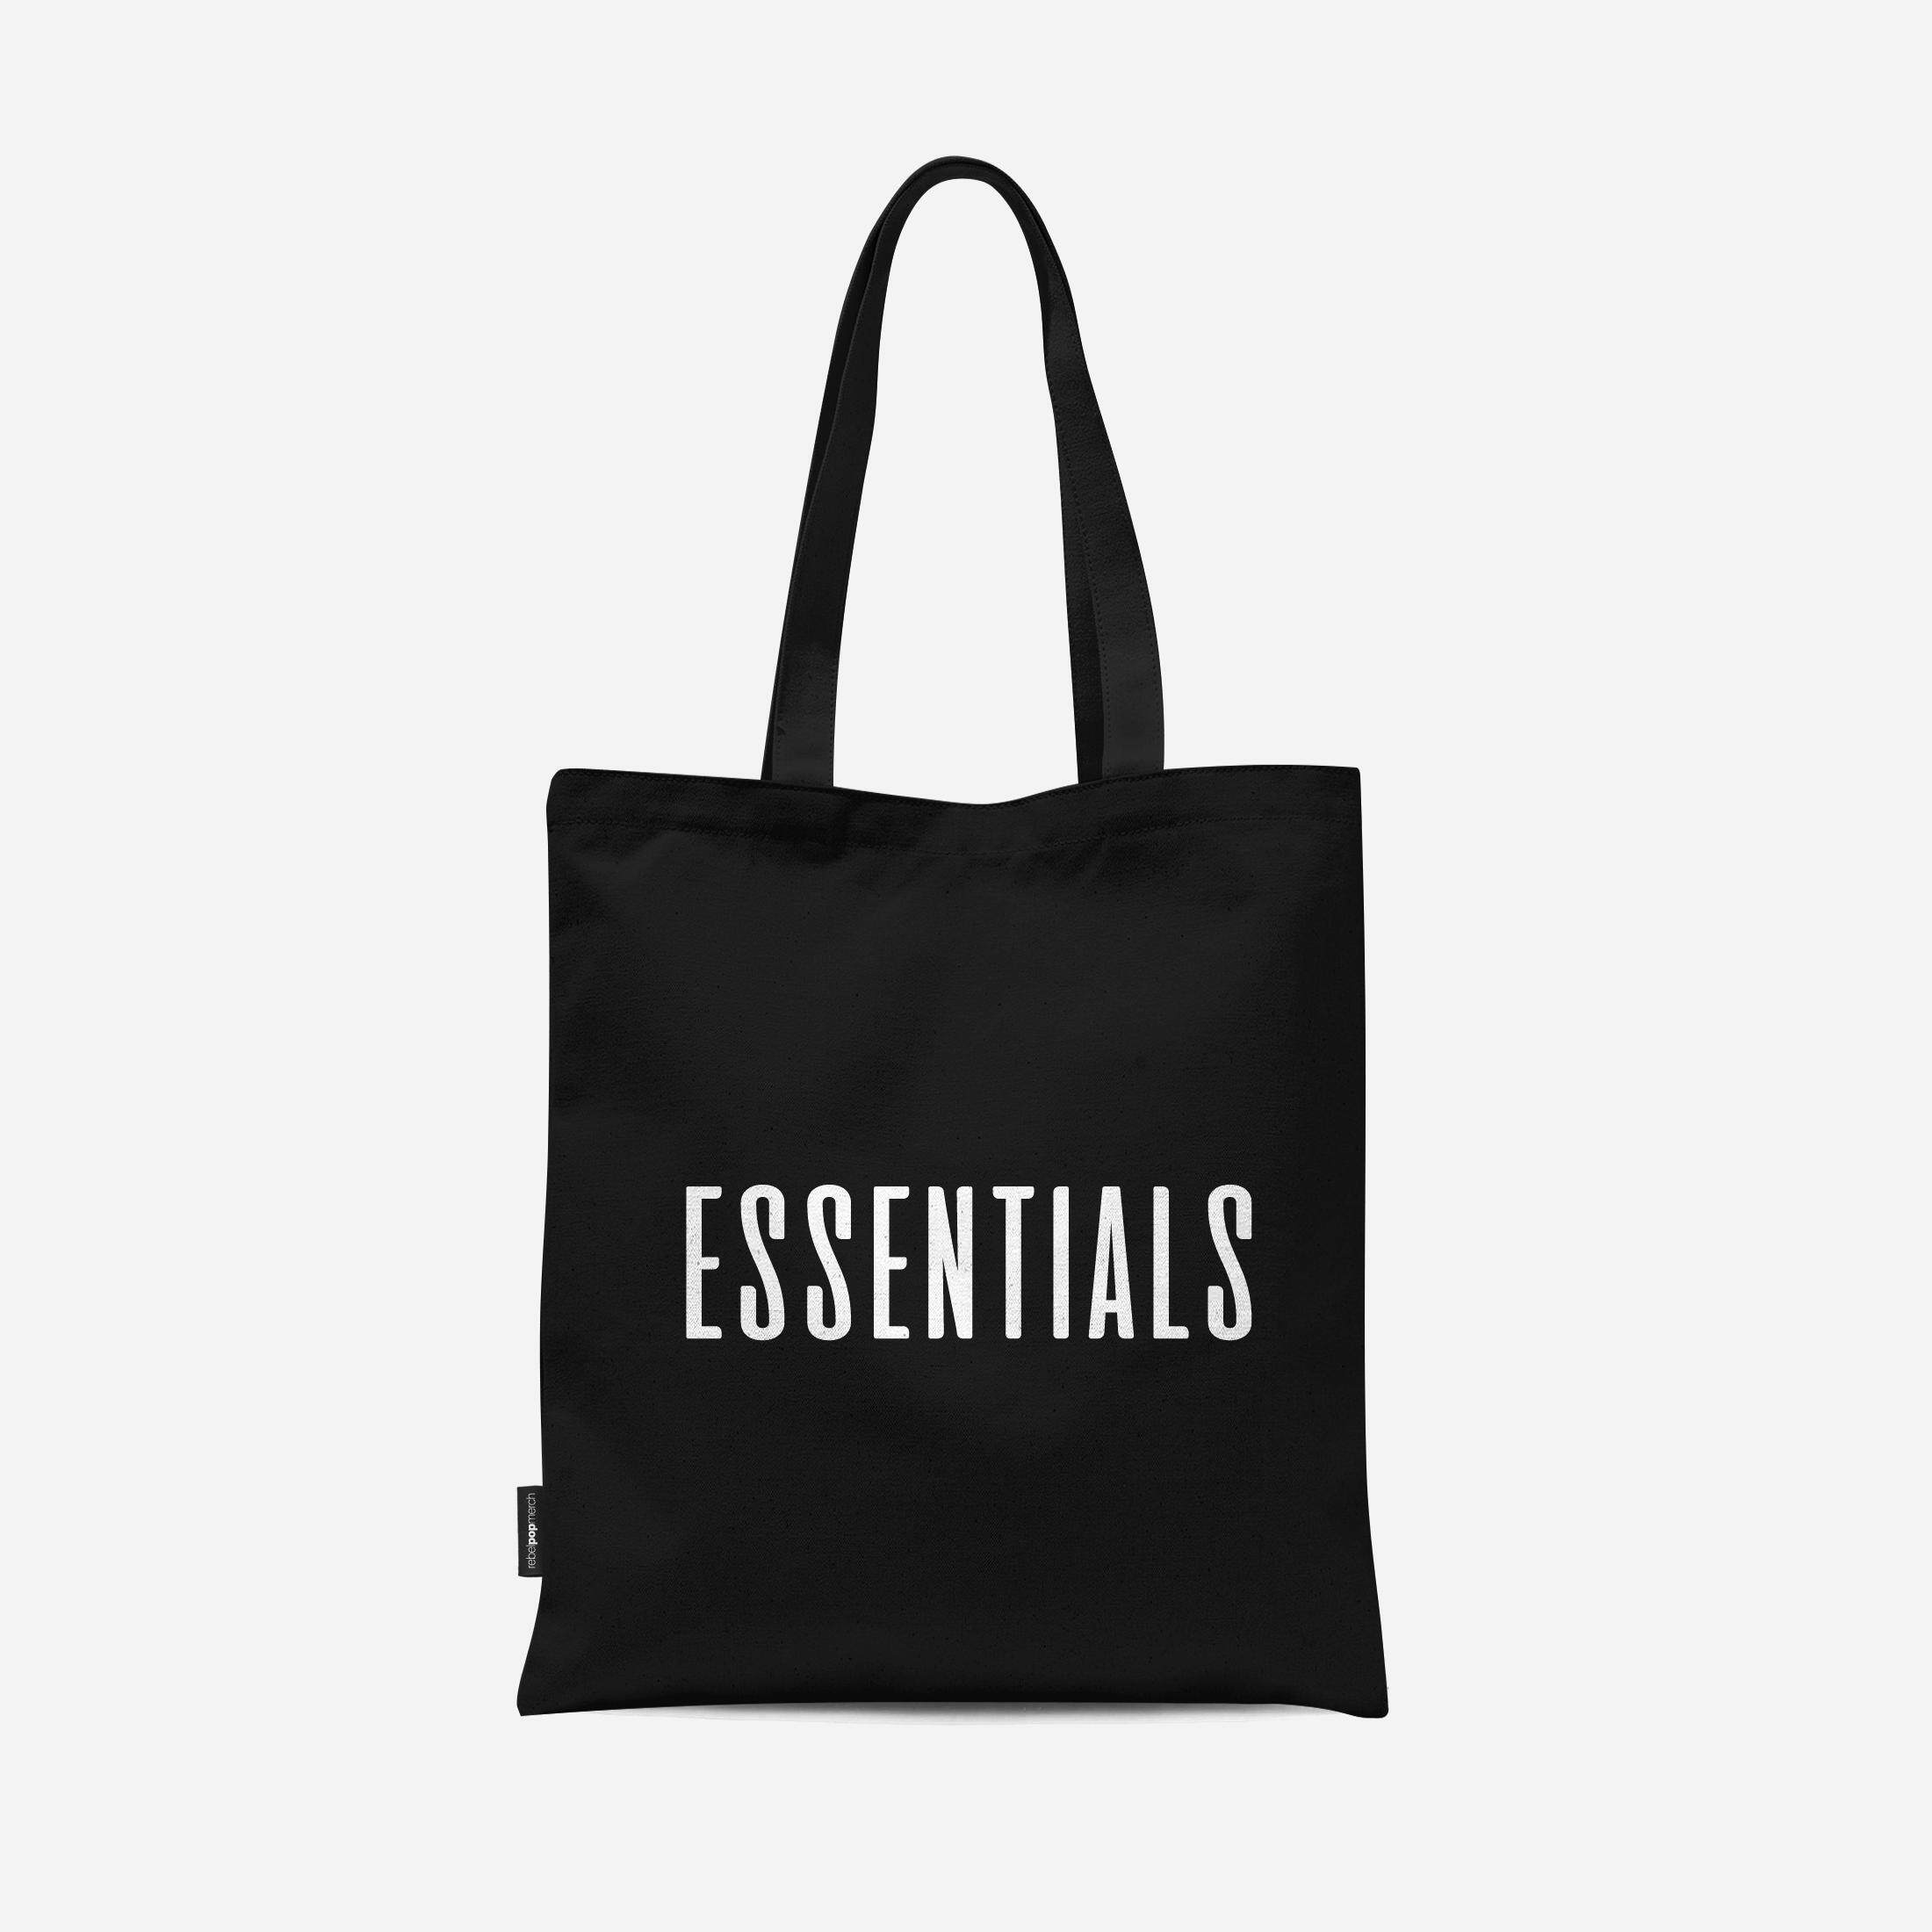 9716fa24d1 Women Tote Bags - Buy Women Tote Bags at Best Price in Malaysia ...